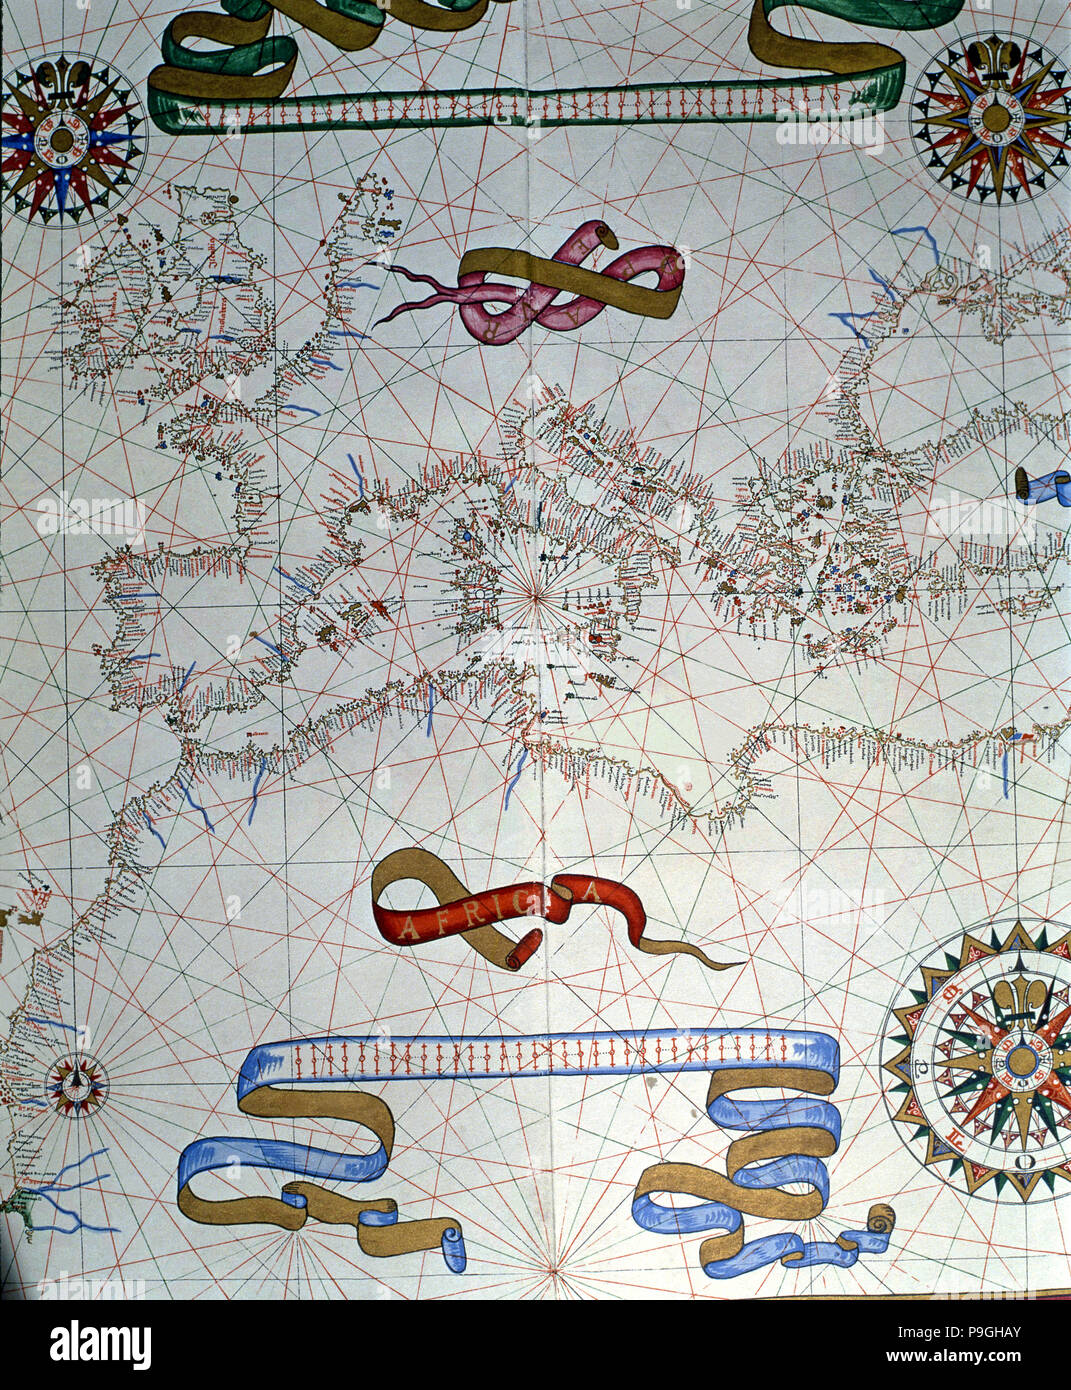 Atlas of Joan Martines, Messina, 1582. Portulan chart of southern Europe and coasts of North Africa. Stock Photo